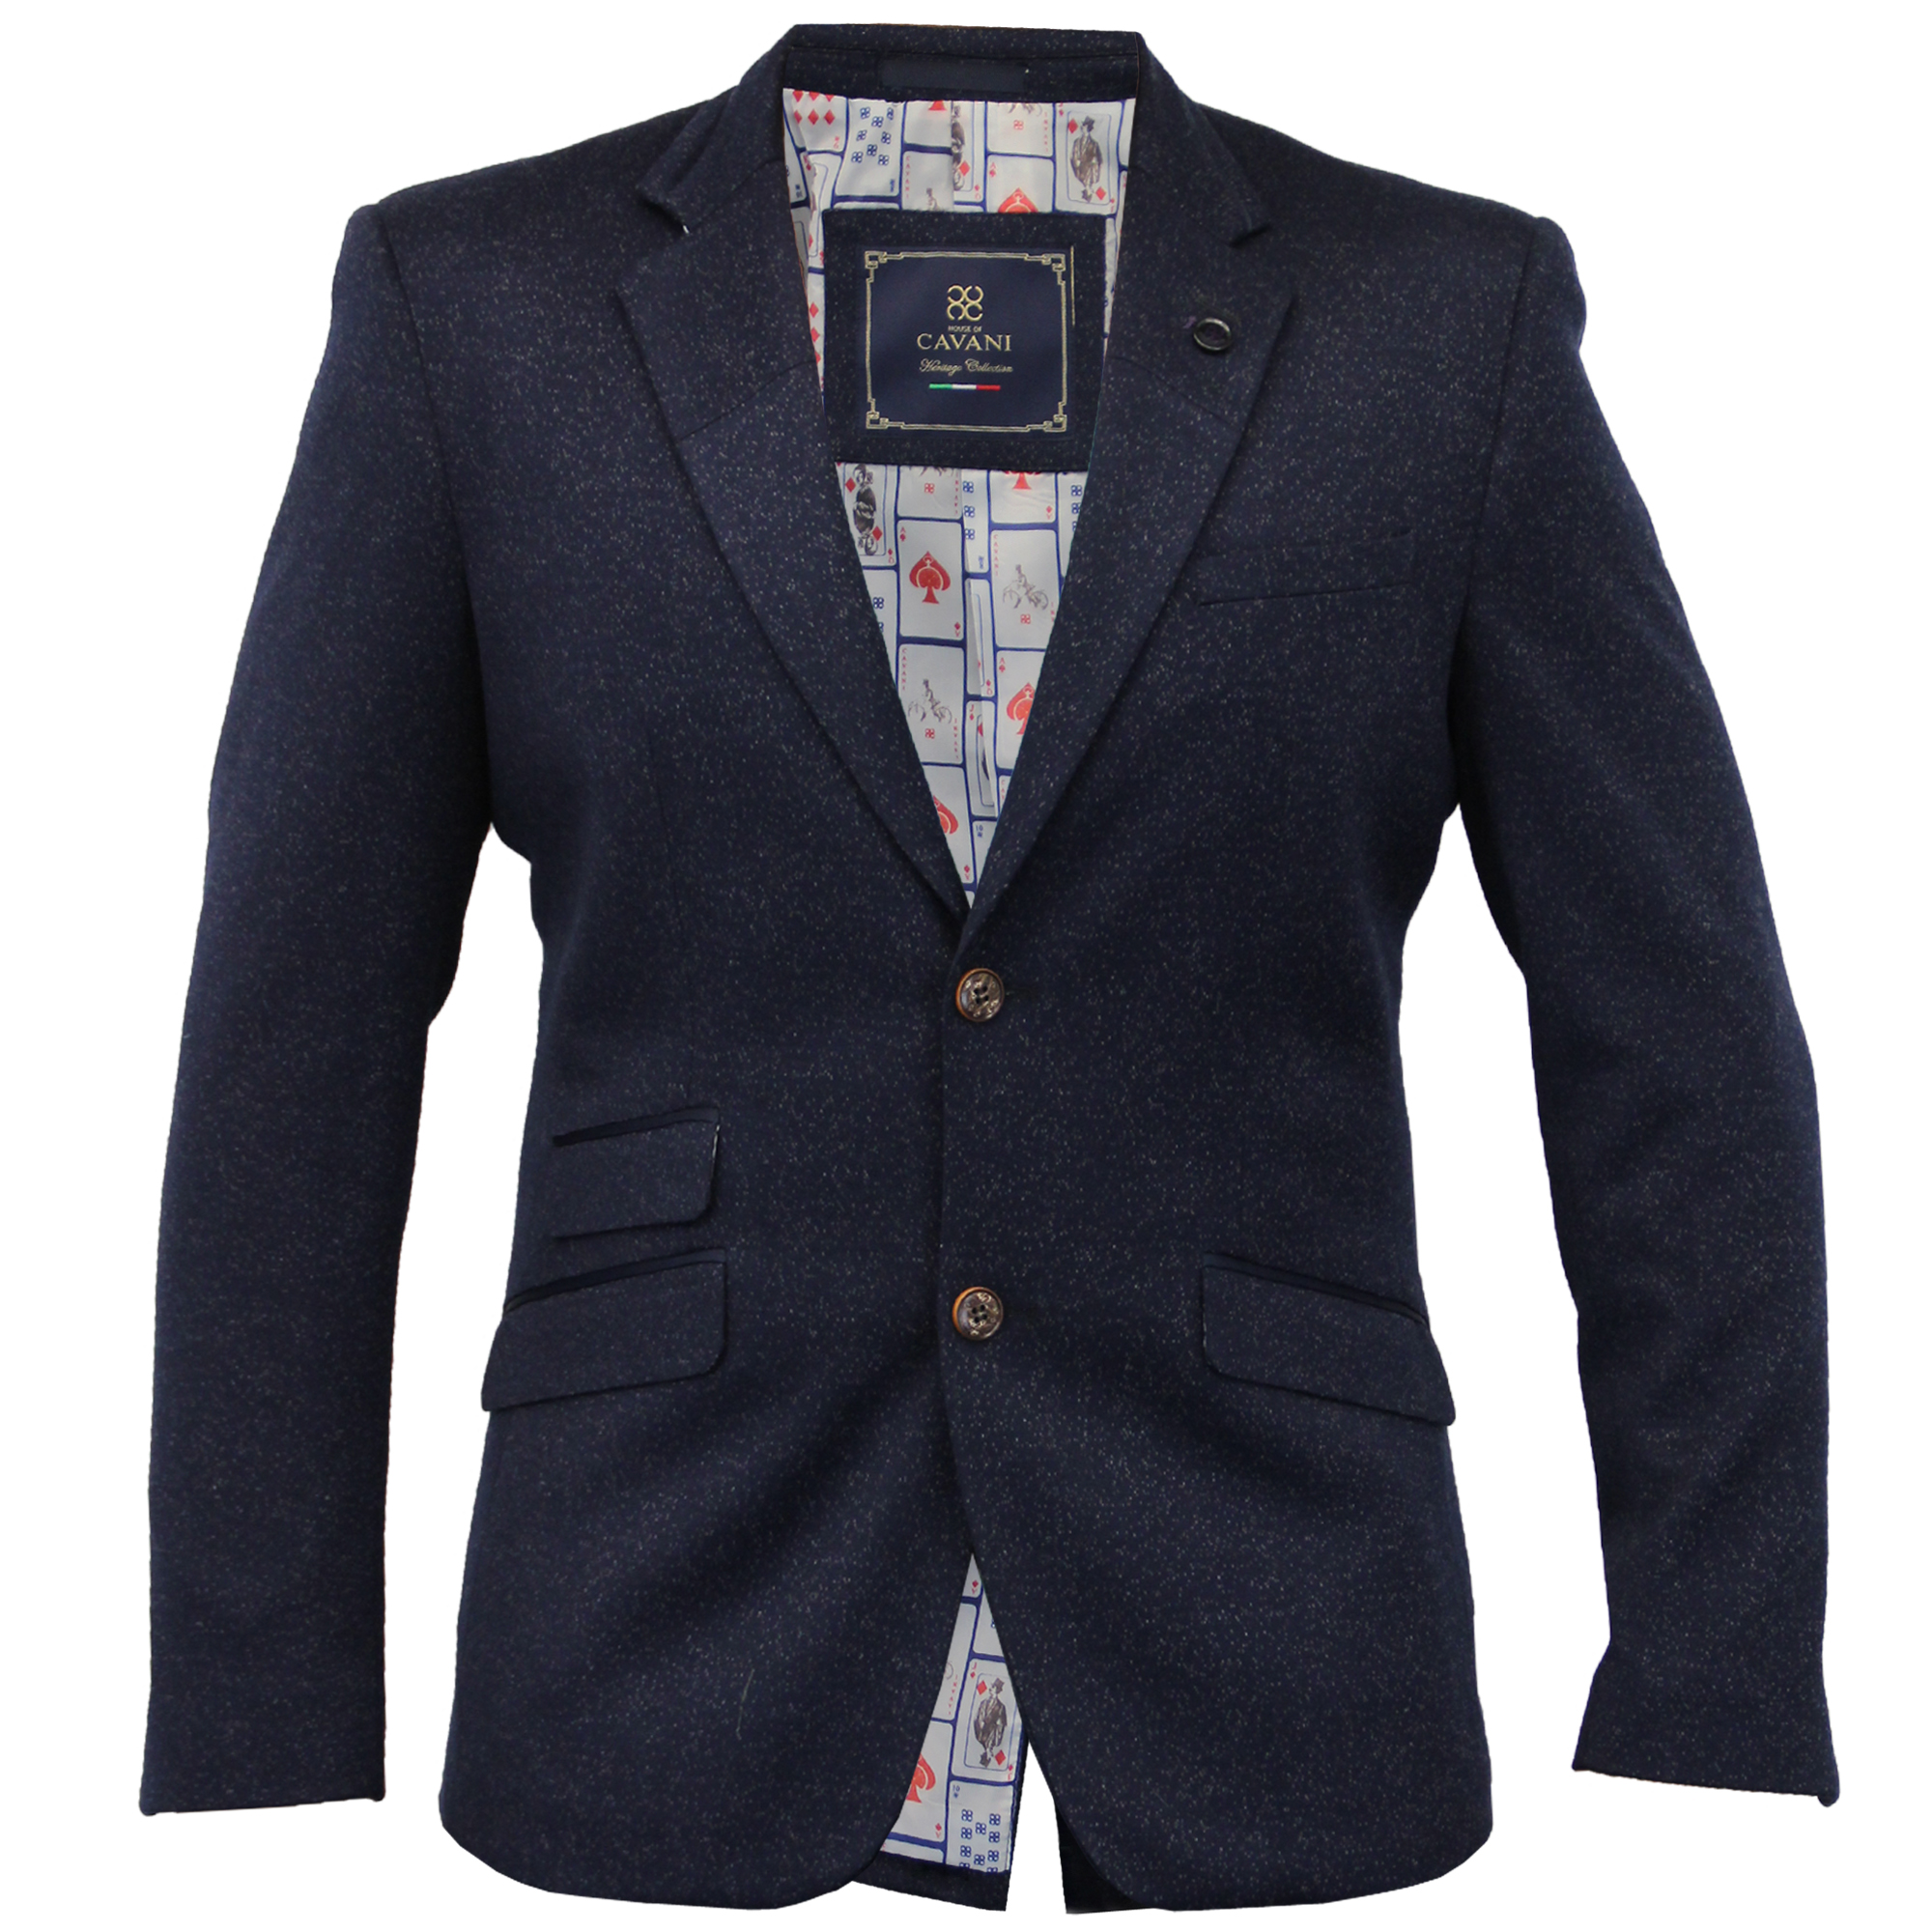 Free shipping on blazers and sport coats at newbez.ml Shop the latest styles from the best brands of blazers for men. Totally free shipping and returns.